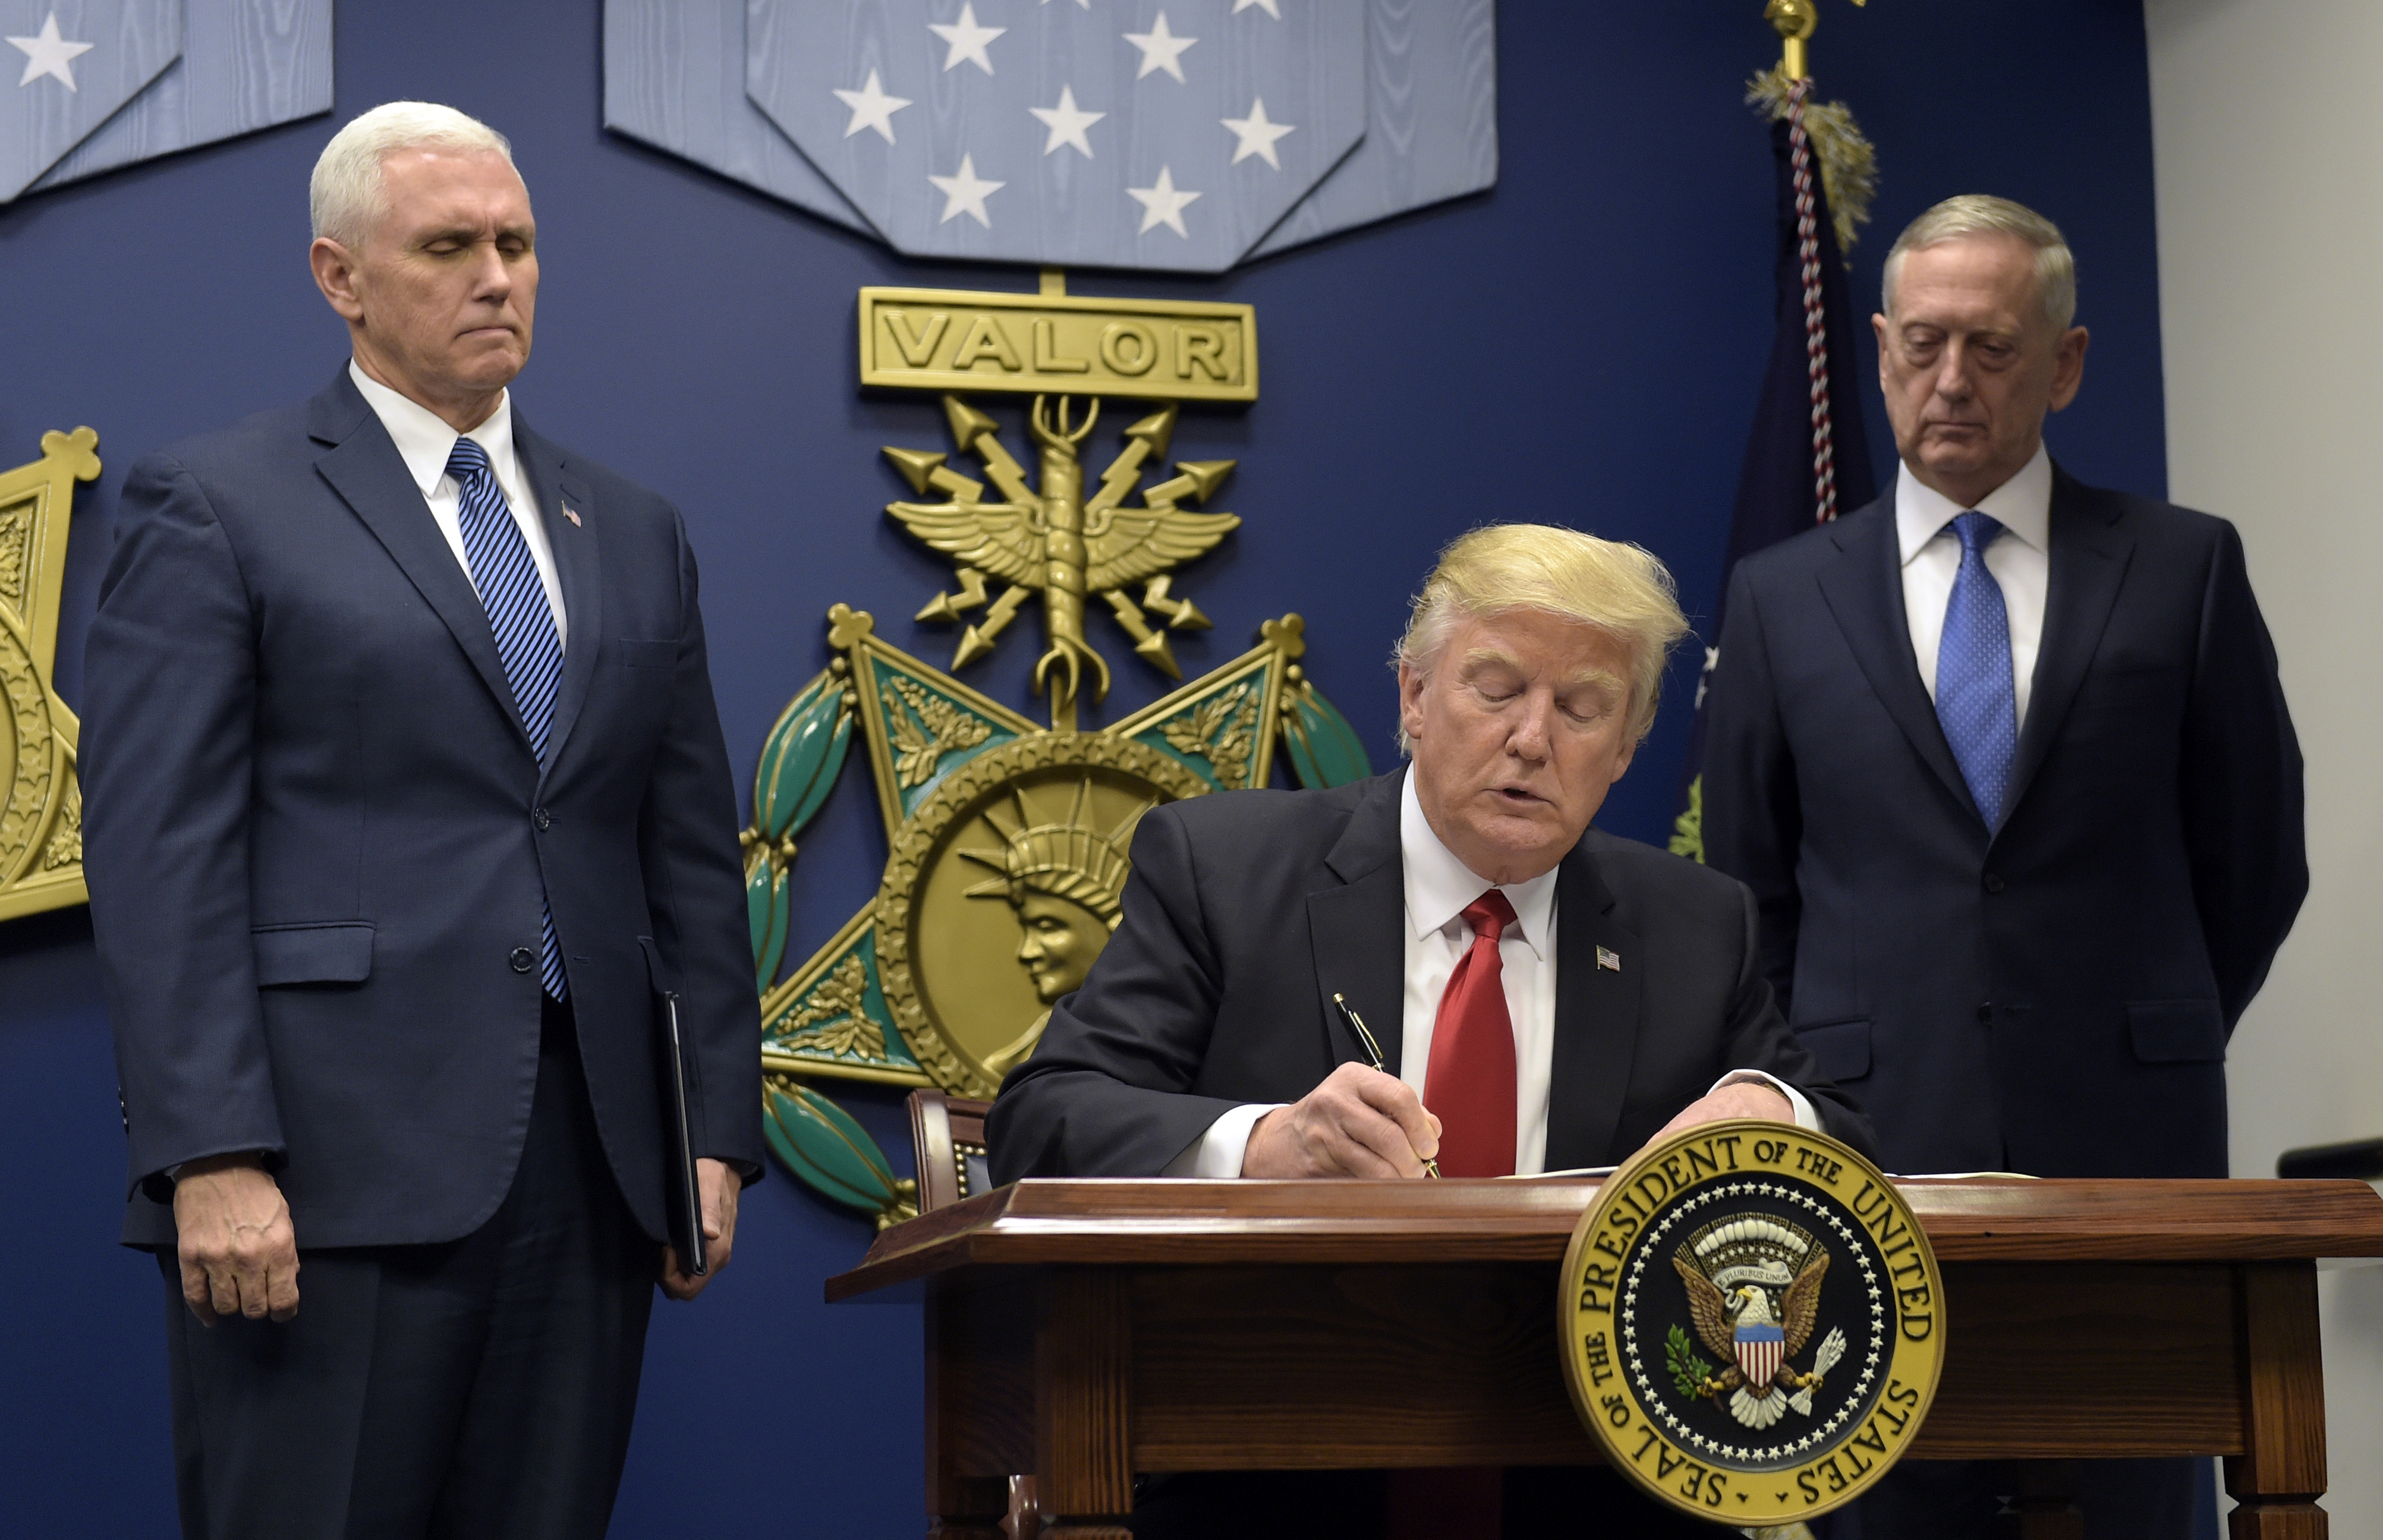 President Donald Trump, center, with Vice President Mike Pence, left, and Defense Secretary James Mattis, right, watching, signs an executive action on extreme vetting at the Pentagon in Washington, Friday, Jan. 27, 2017. (AP Photo/Susan Walsh)